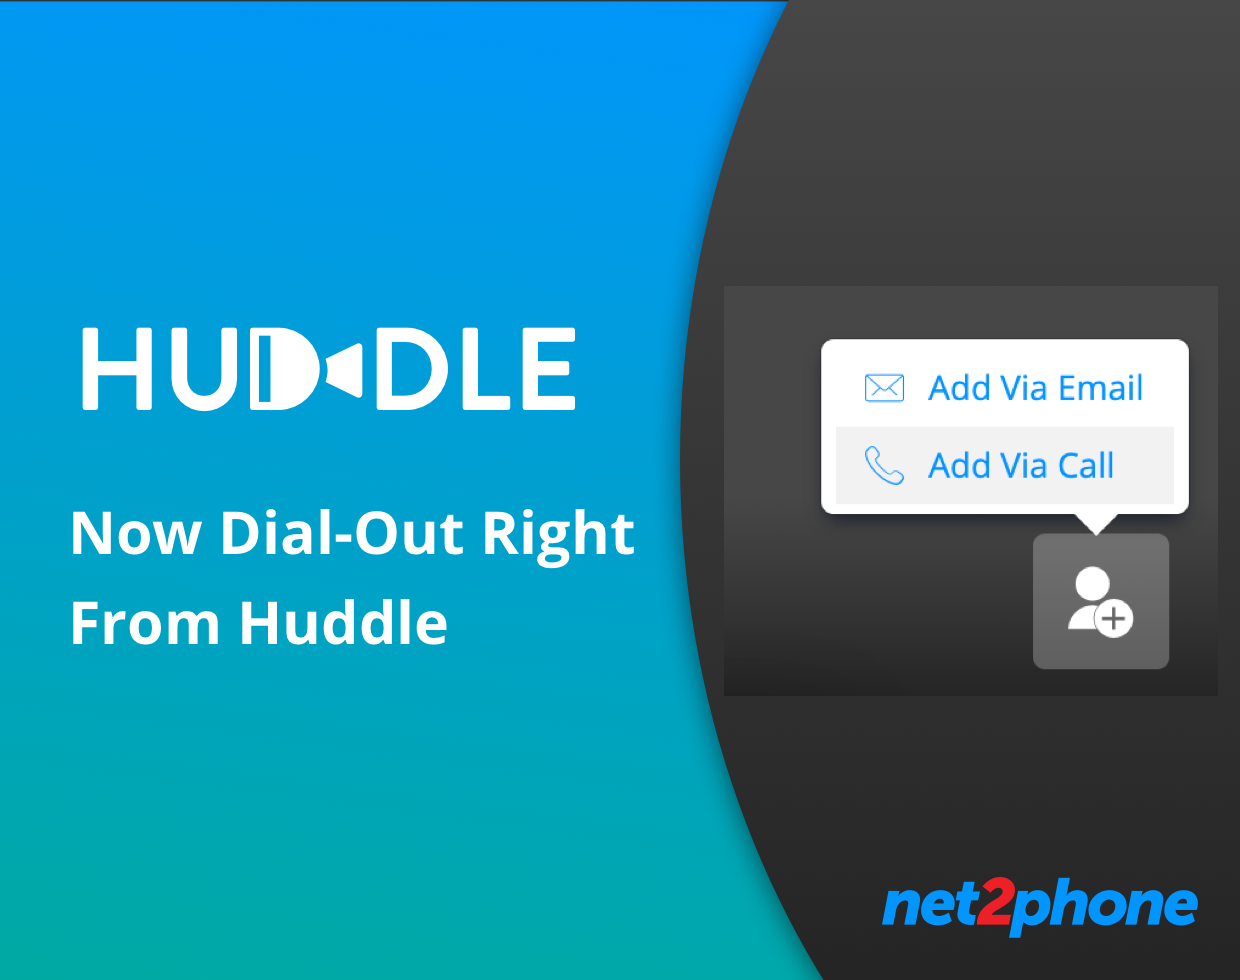 huddle-dial-out